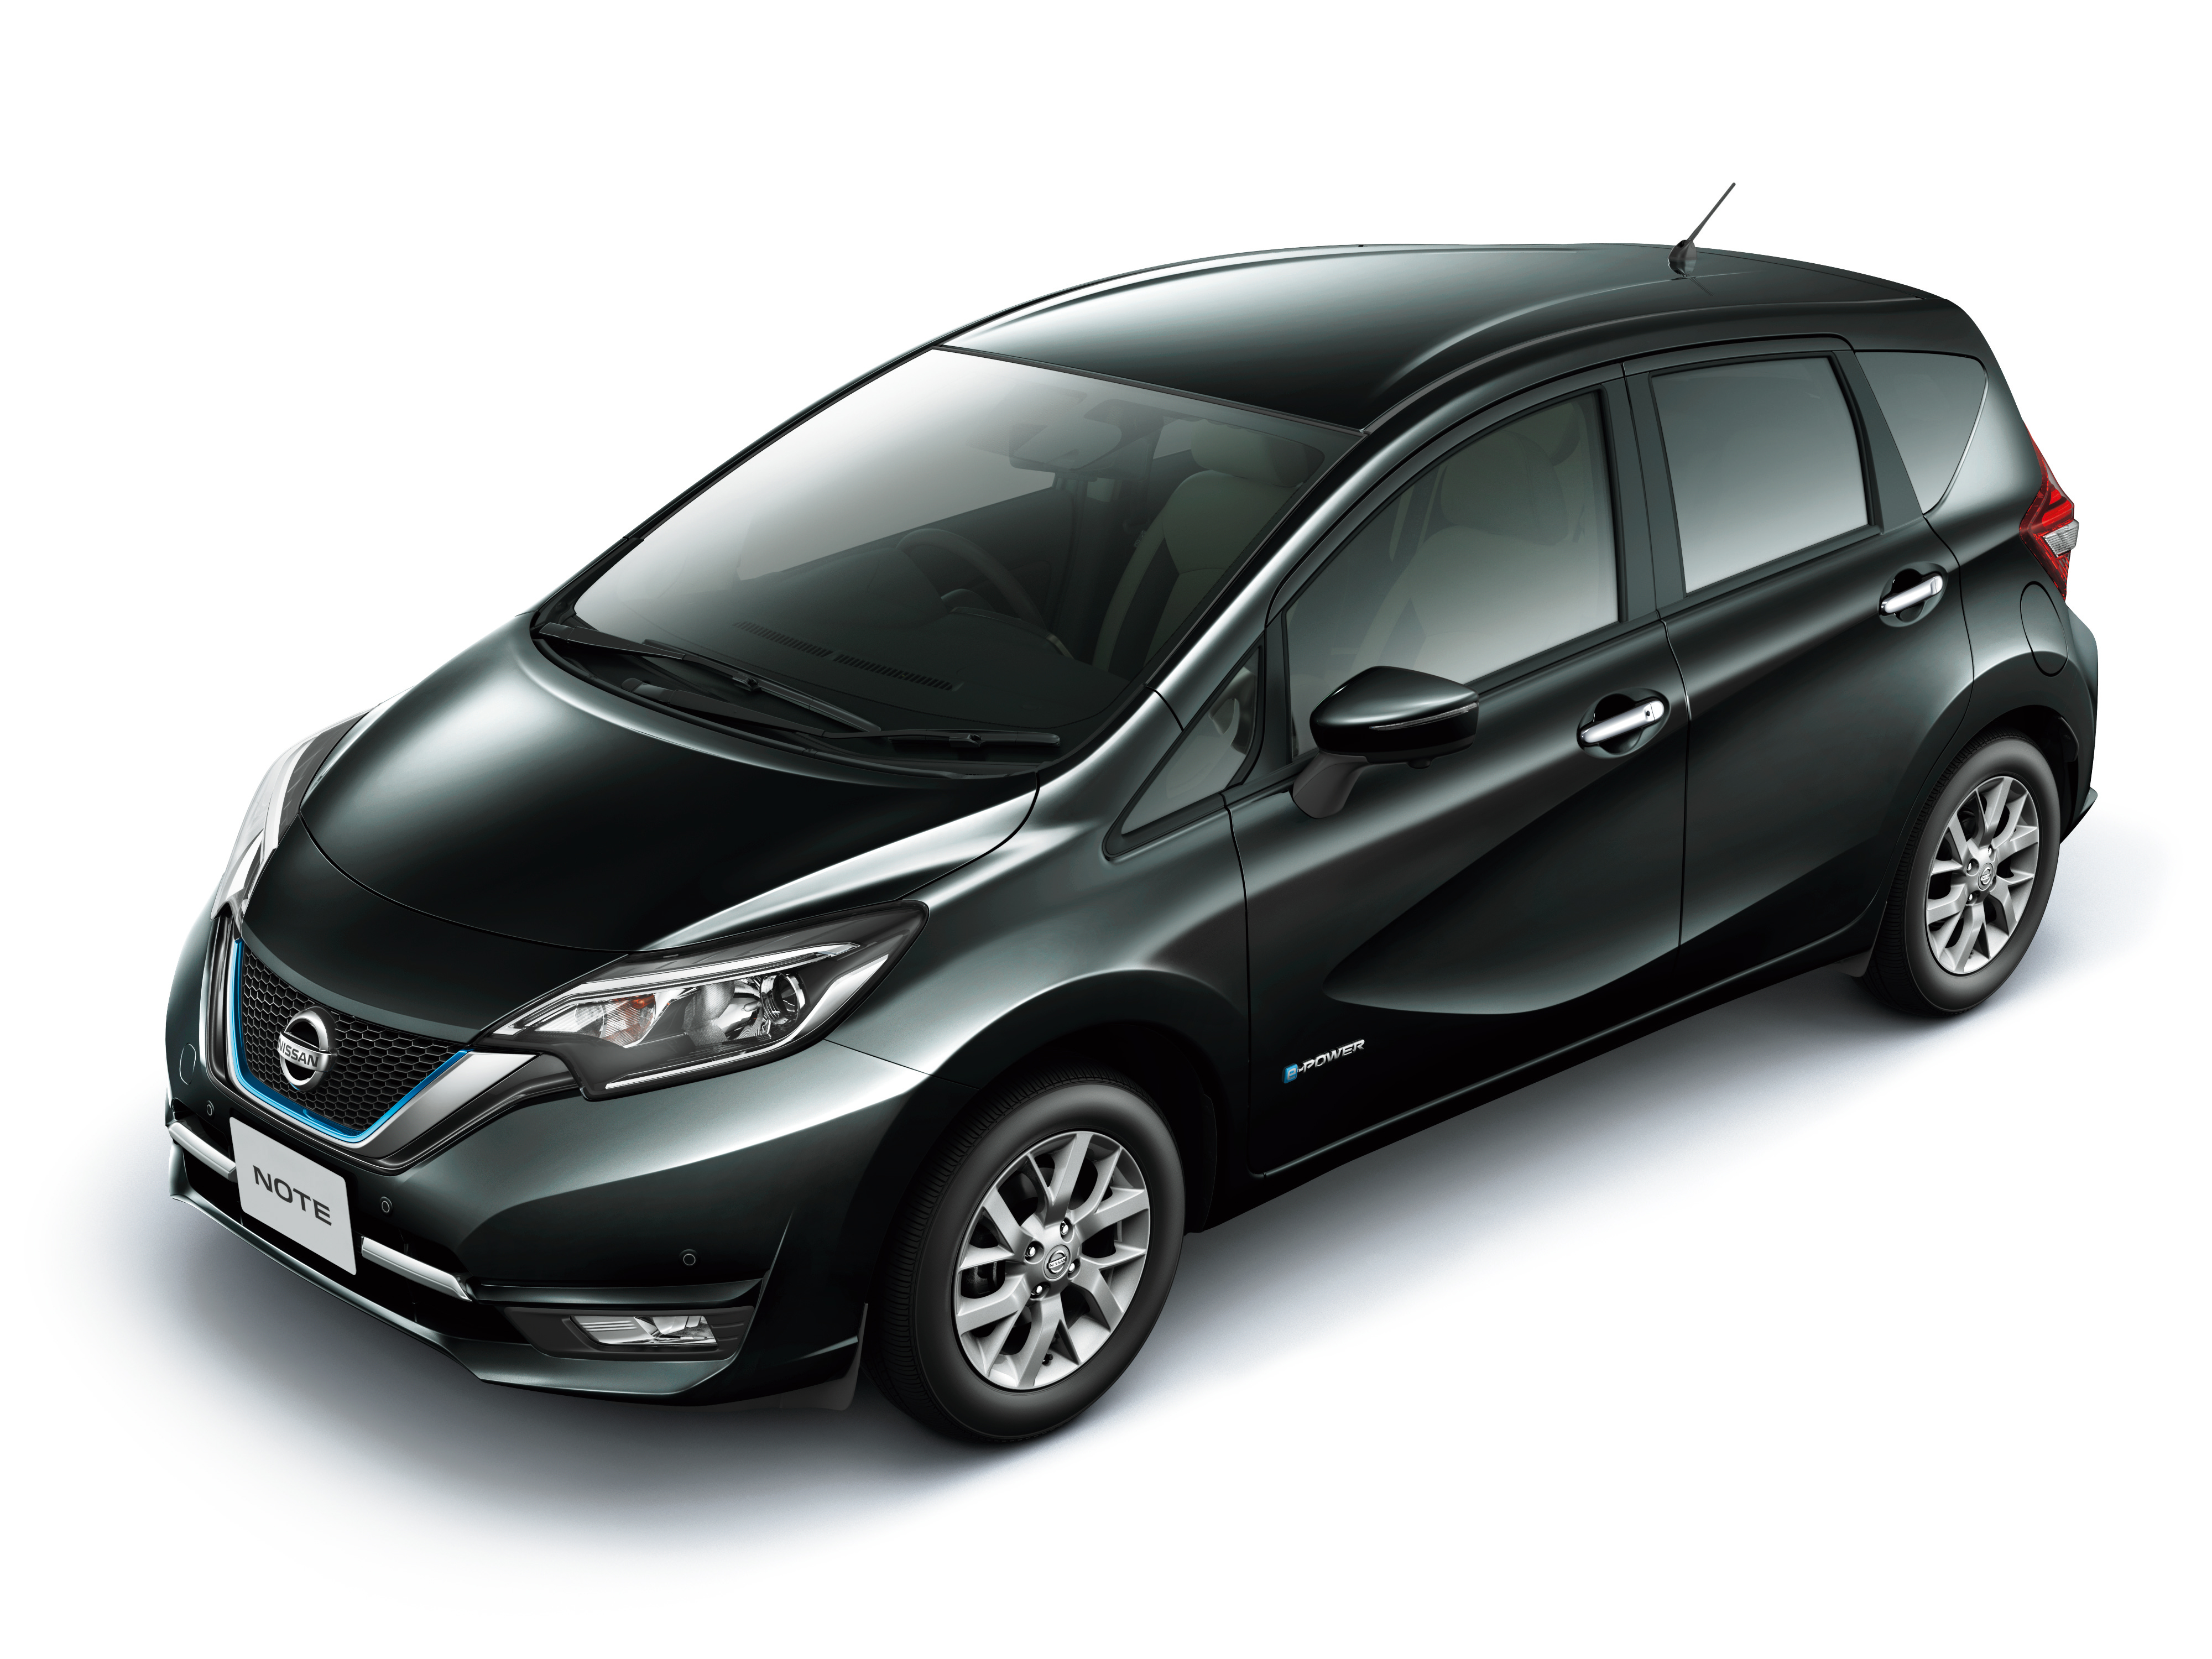 nissan note e power detailed range extender hybrid without plug in socket 1 2l engine 37 2. Black Bedroom Furniture Sets. Home Design Ideas